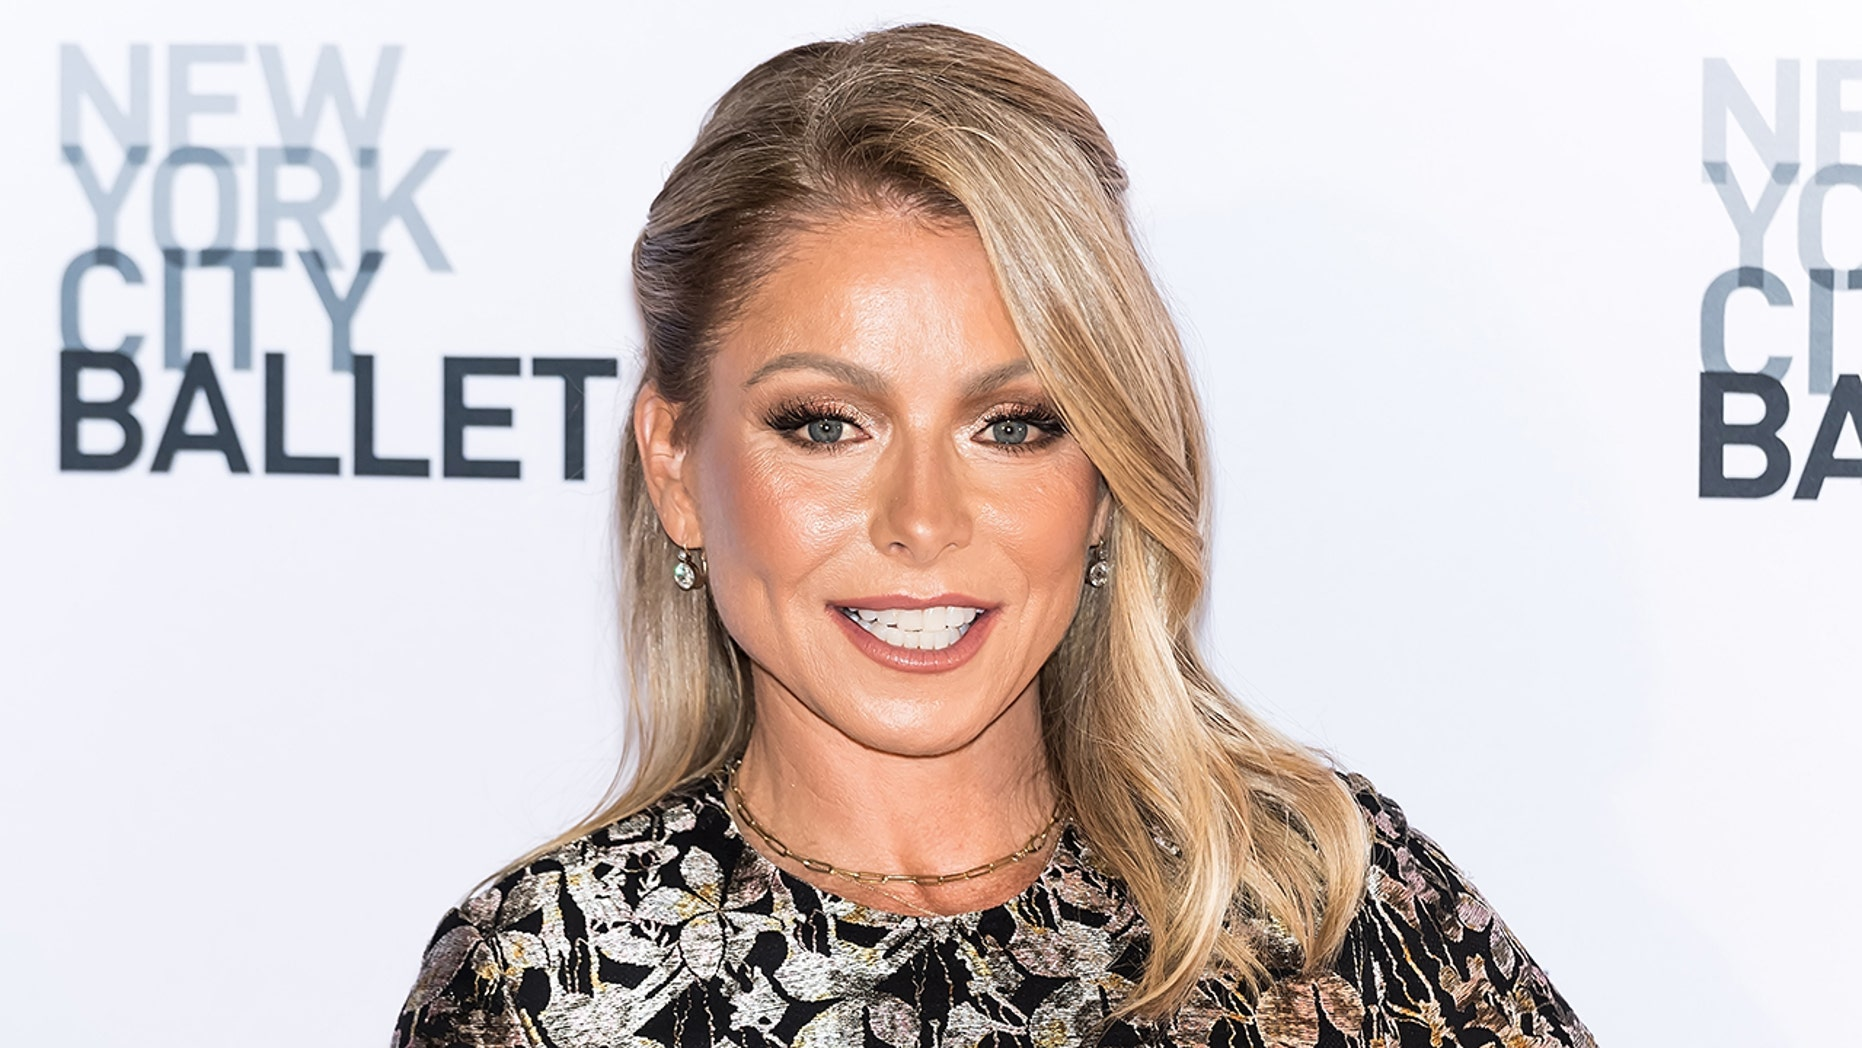 Kelly Ripa opened up about Felicity Huffman and Lori Loughlin's involvement in the college admissions scandal.